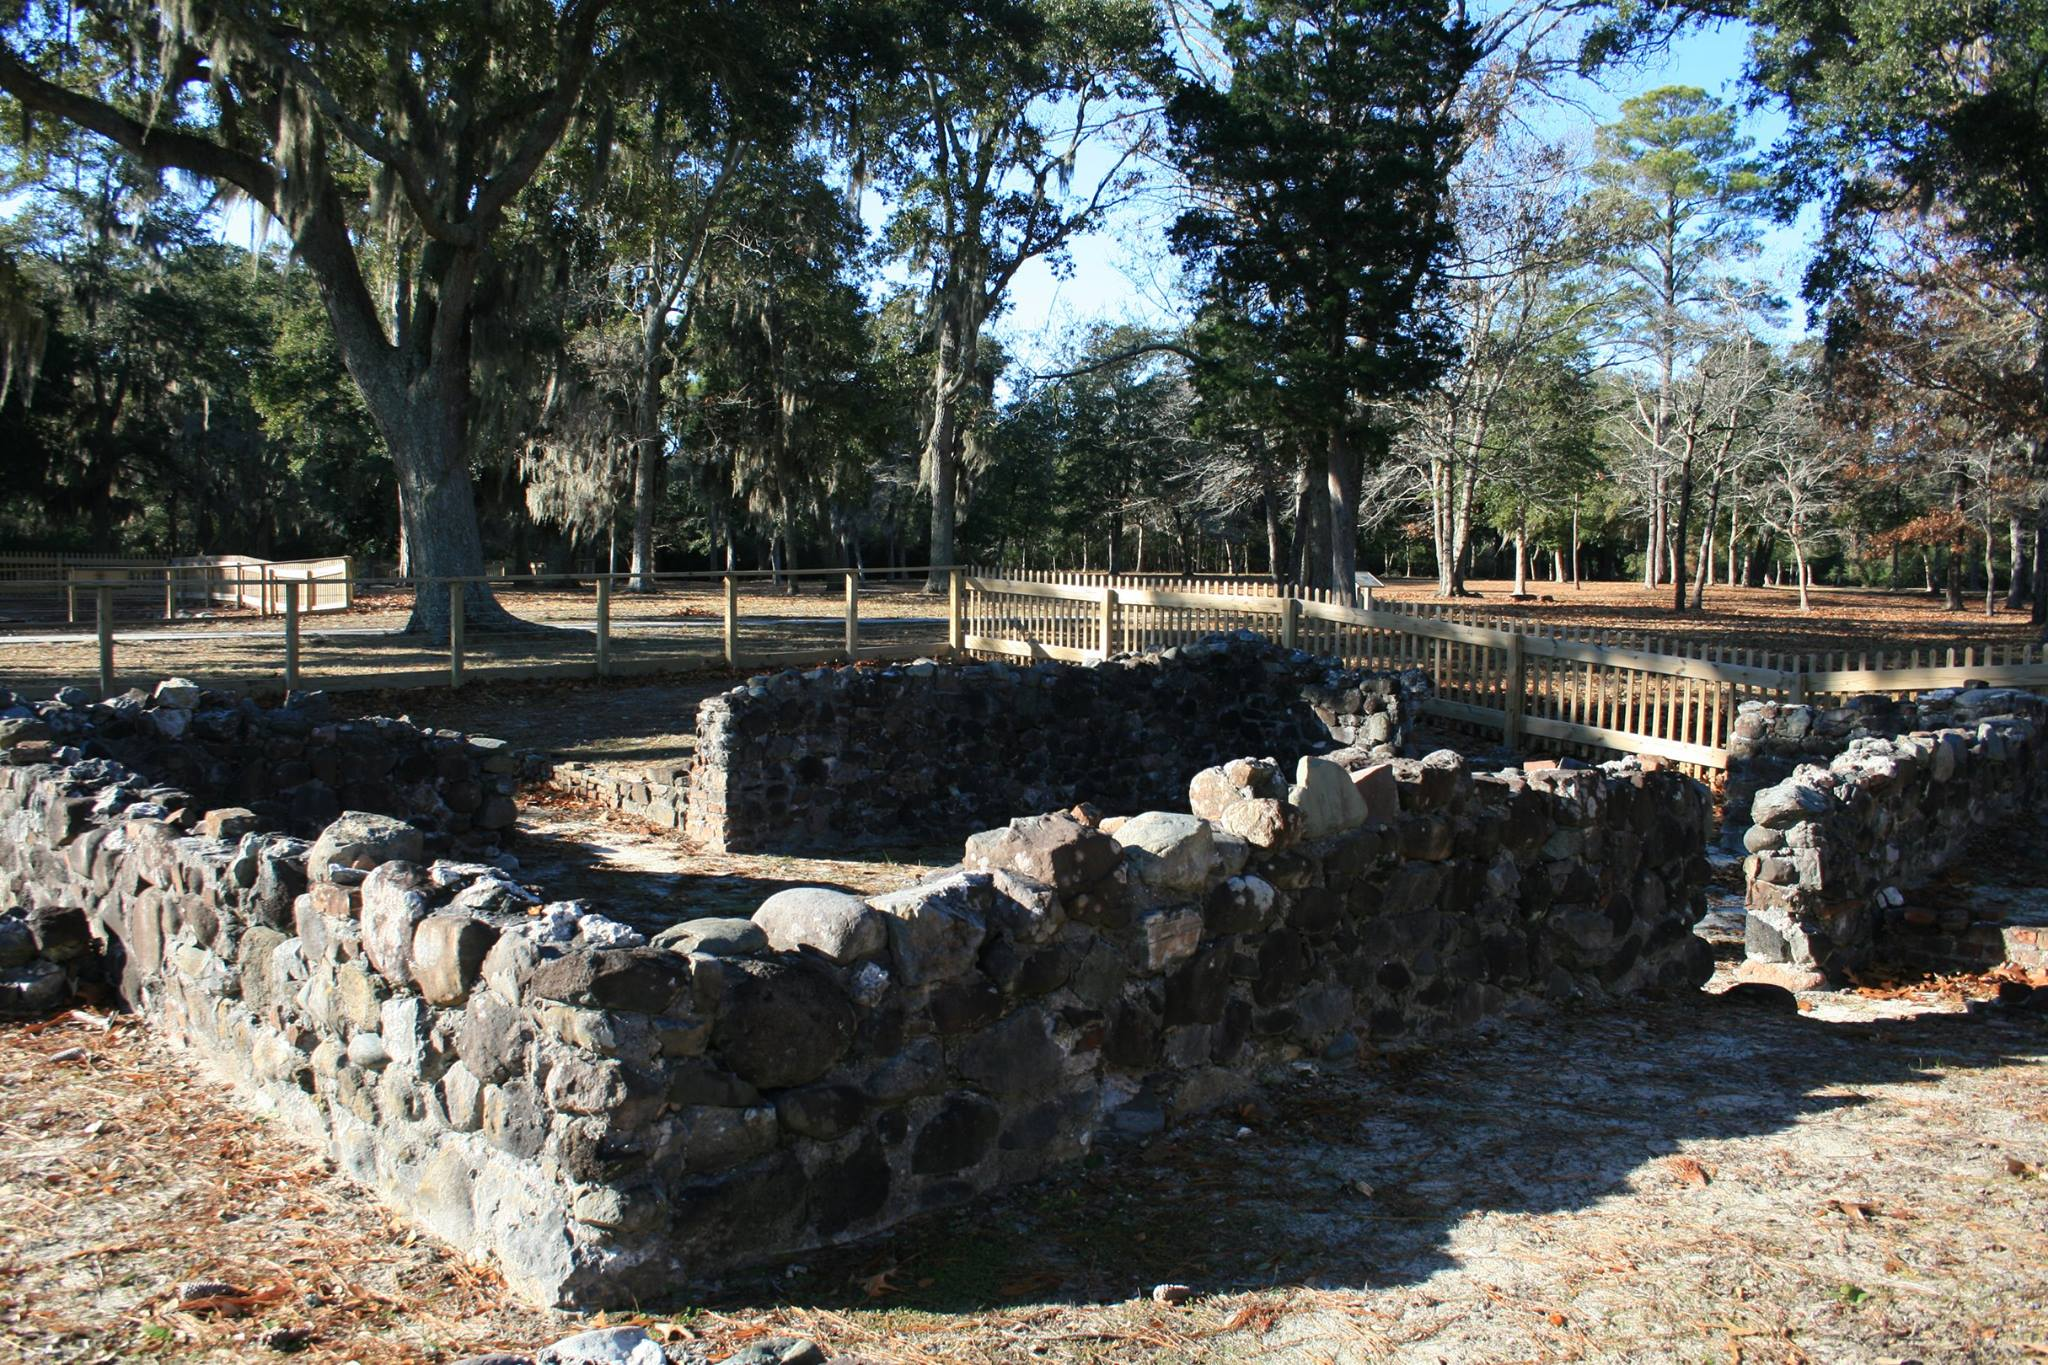 excavated foundation of Fort Anderson